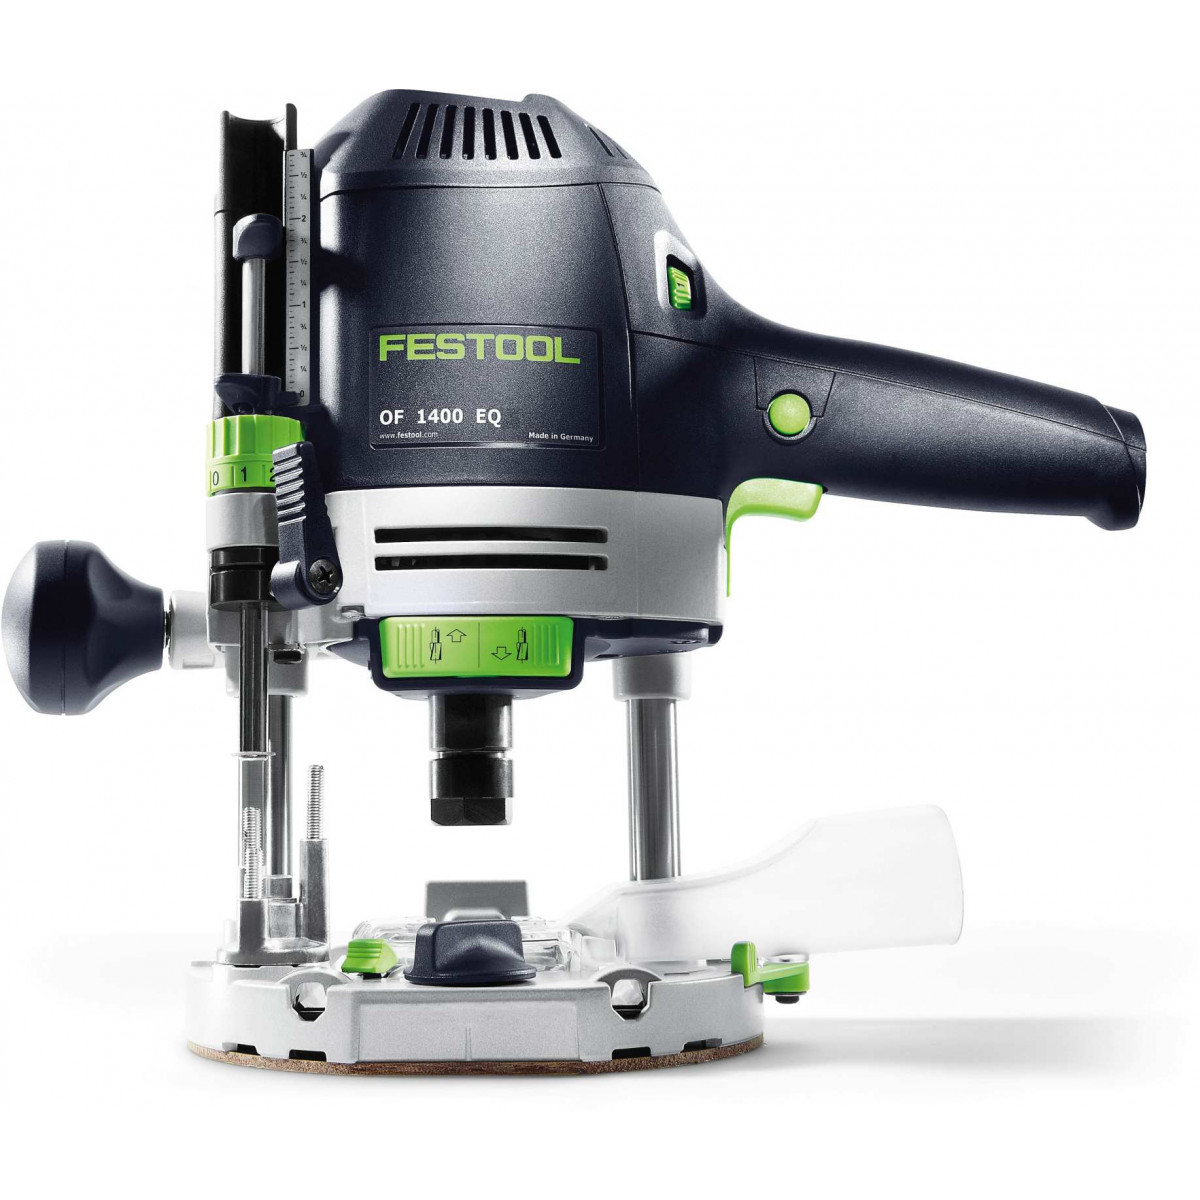 Festool 574692 plunge router Imperial